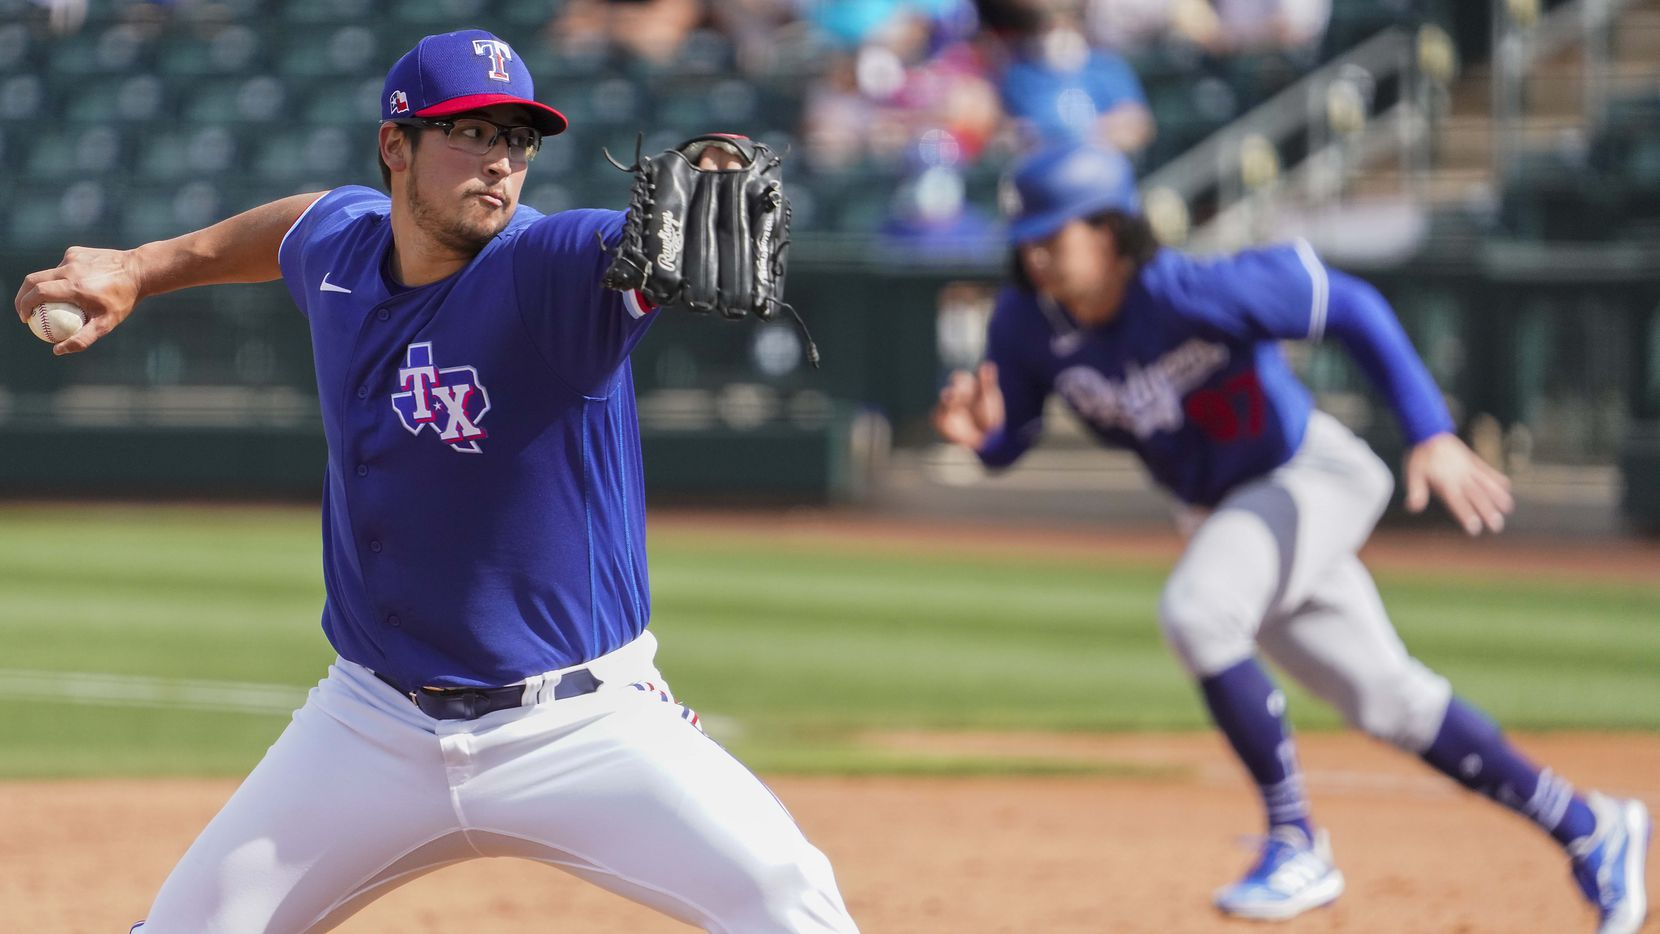 Texas Rangers pitcher Dane Dunning delivers during the sixth inning of a spring training game against the Los Angeles Dodgers at Surprise Stadium on Sunday, March 7, 2021, in Surprise, Ariz.